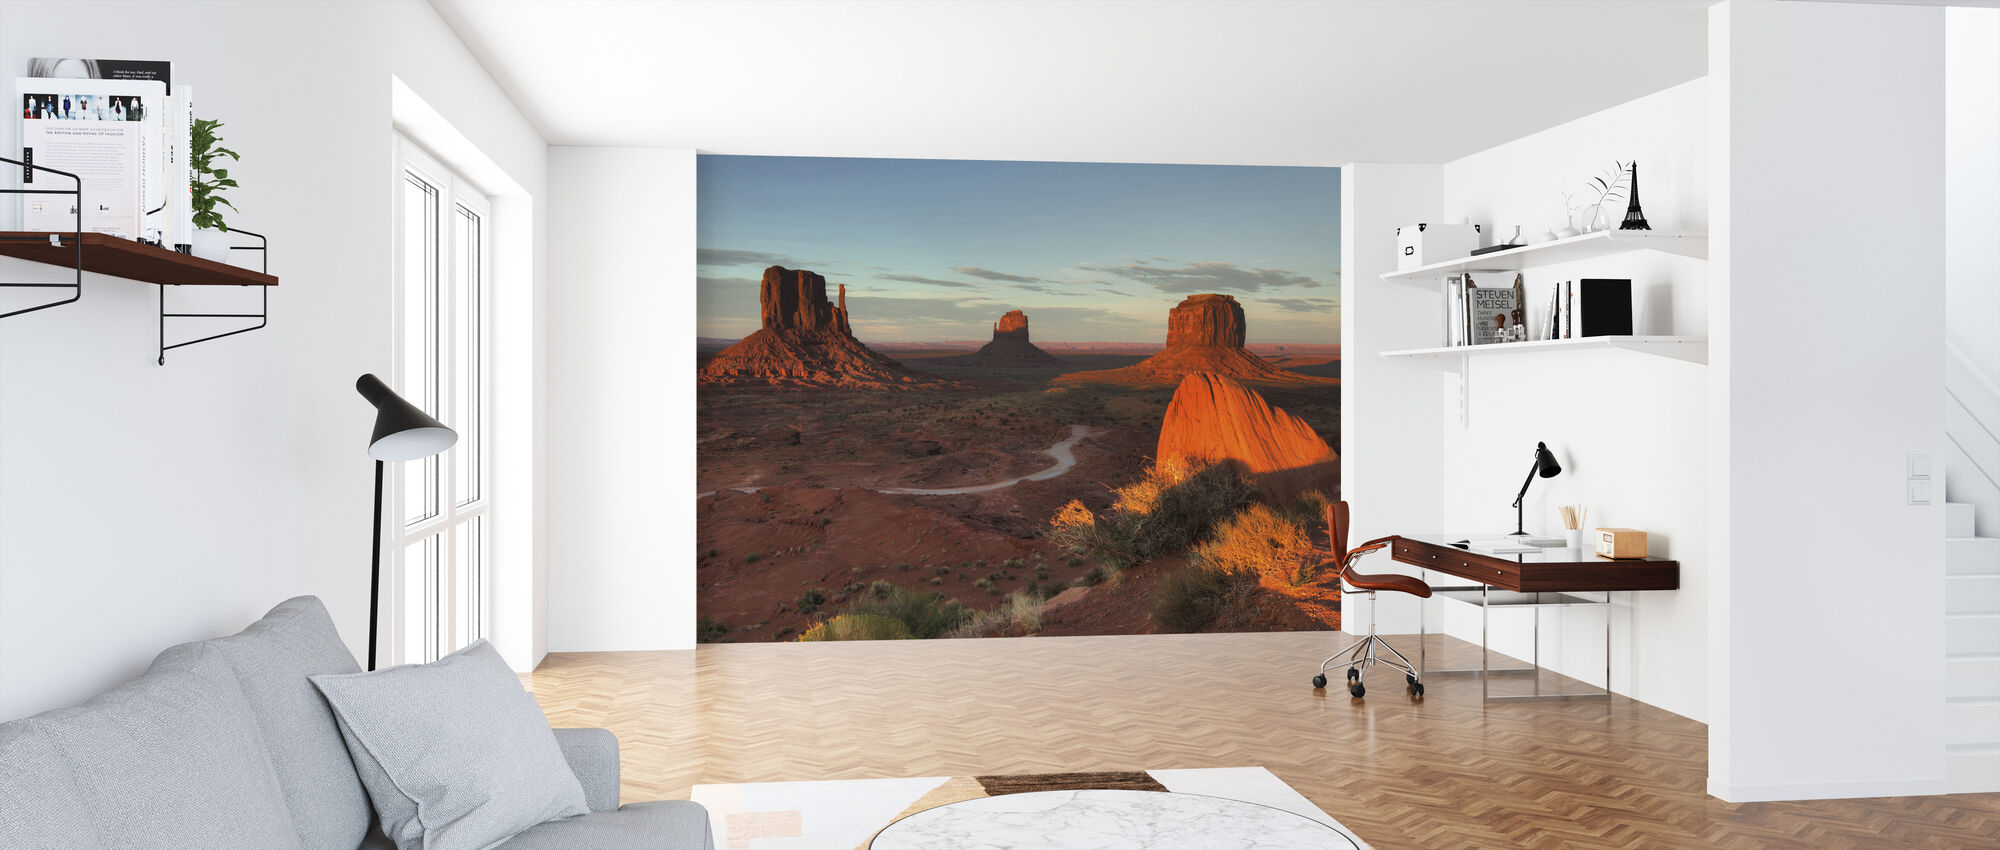 Colorado Plateau - Wallpaper - Office